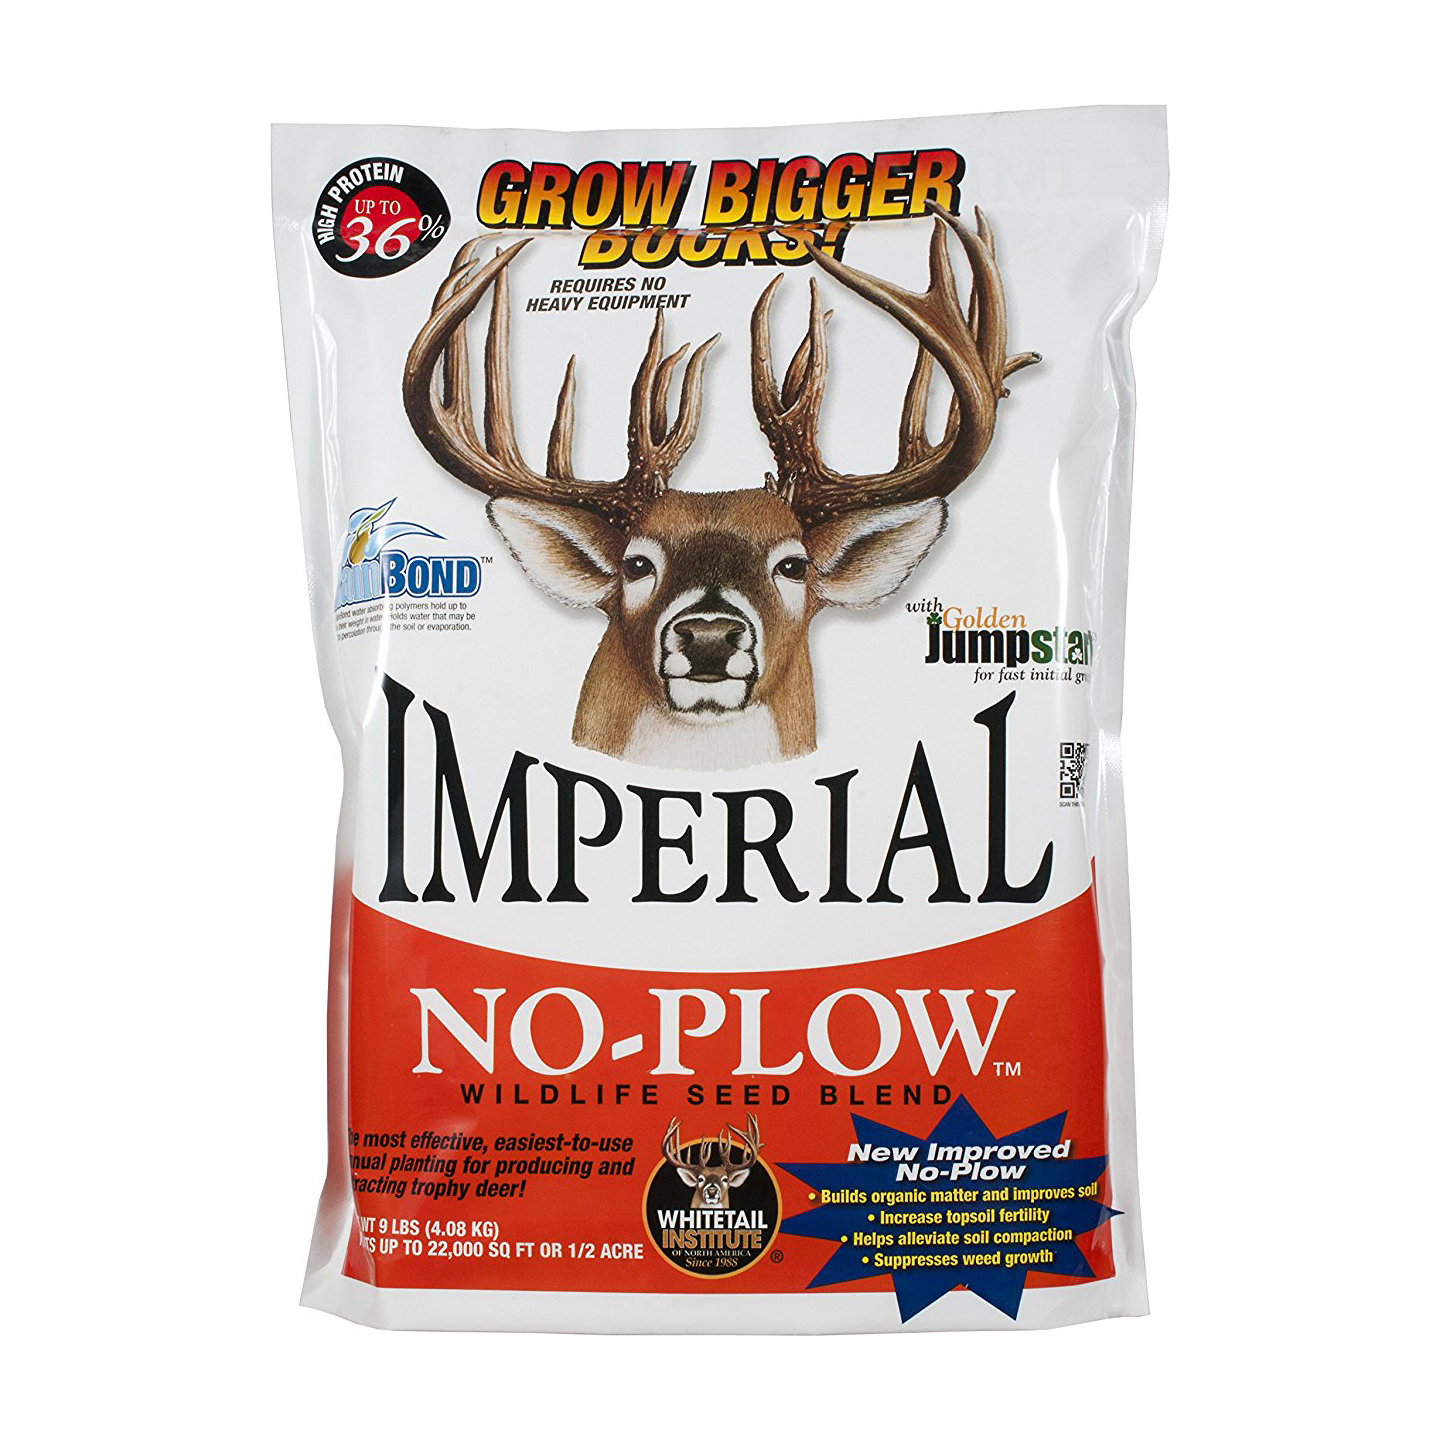 Whitetail Institute Imperial No-Plow Food Plot Seed Blend, 5-lb.